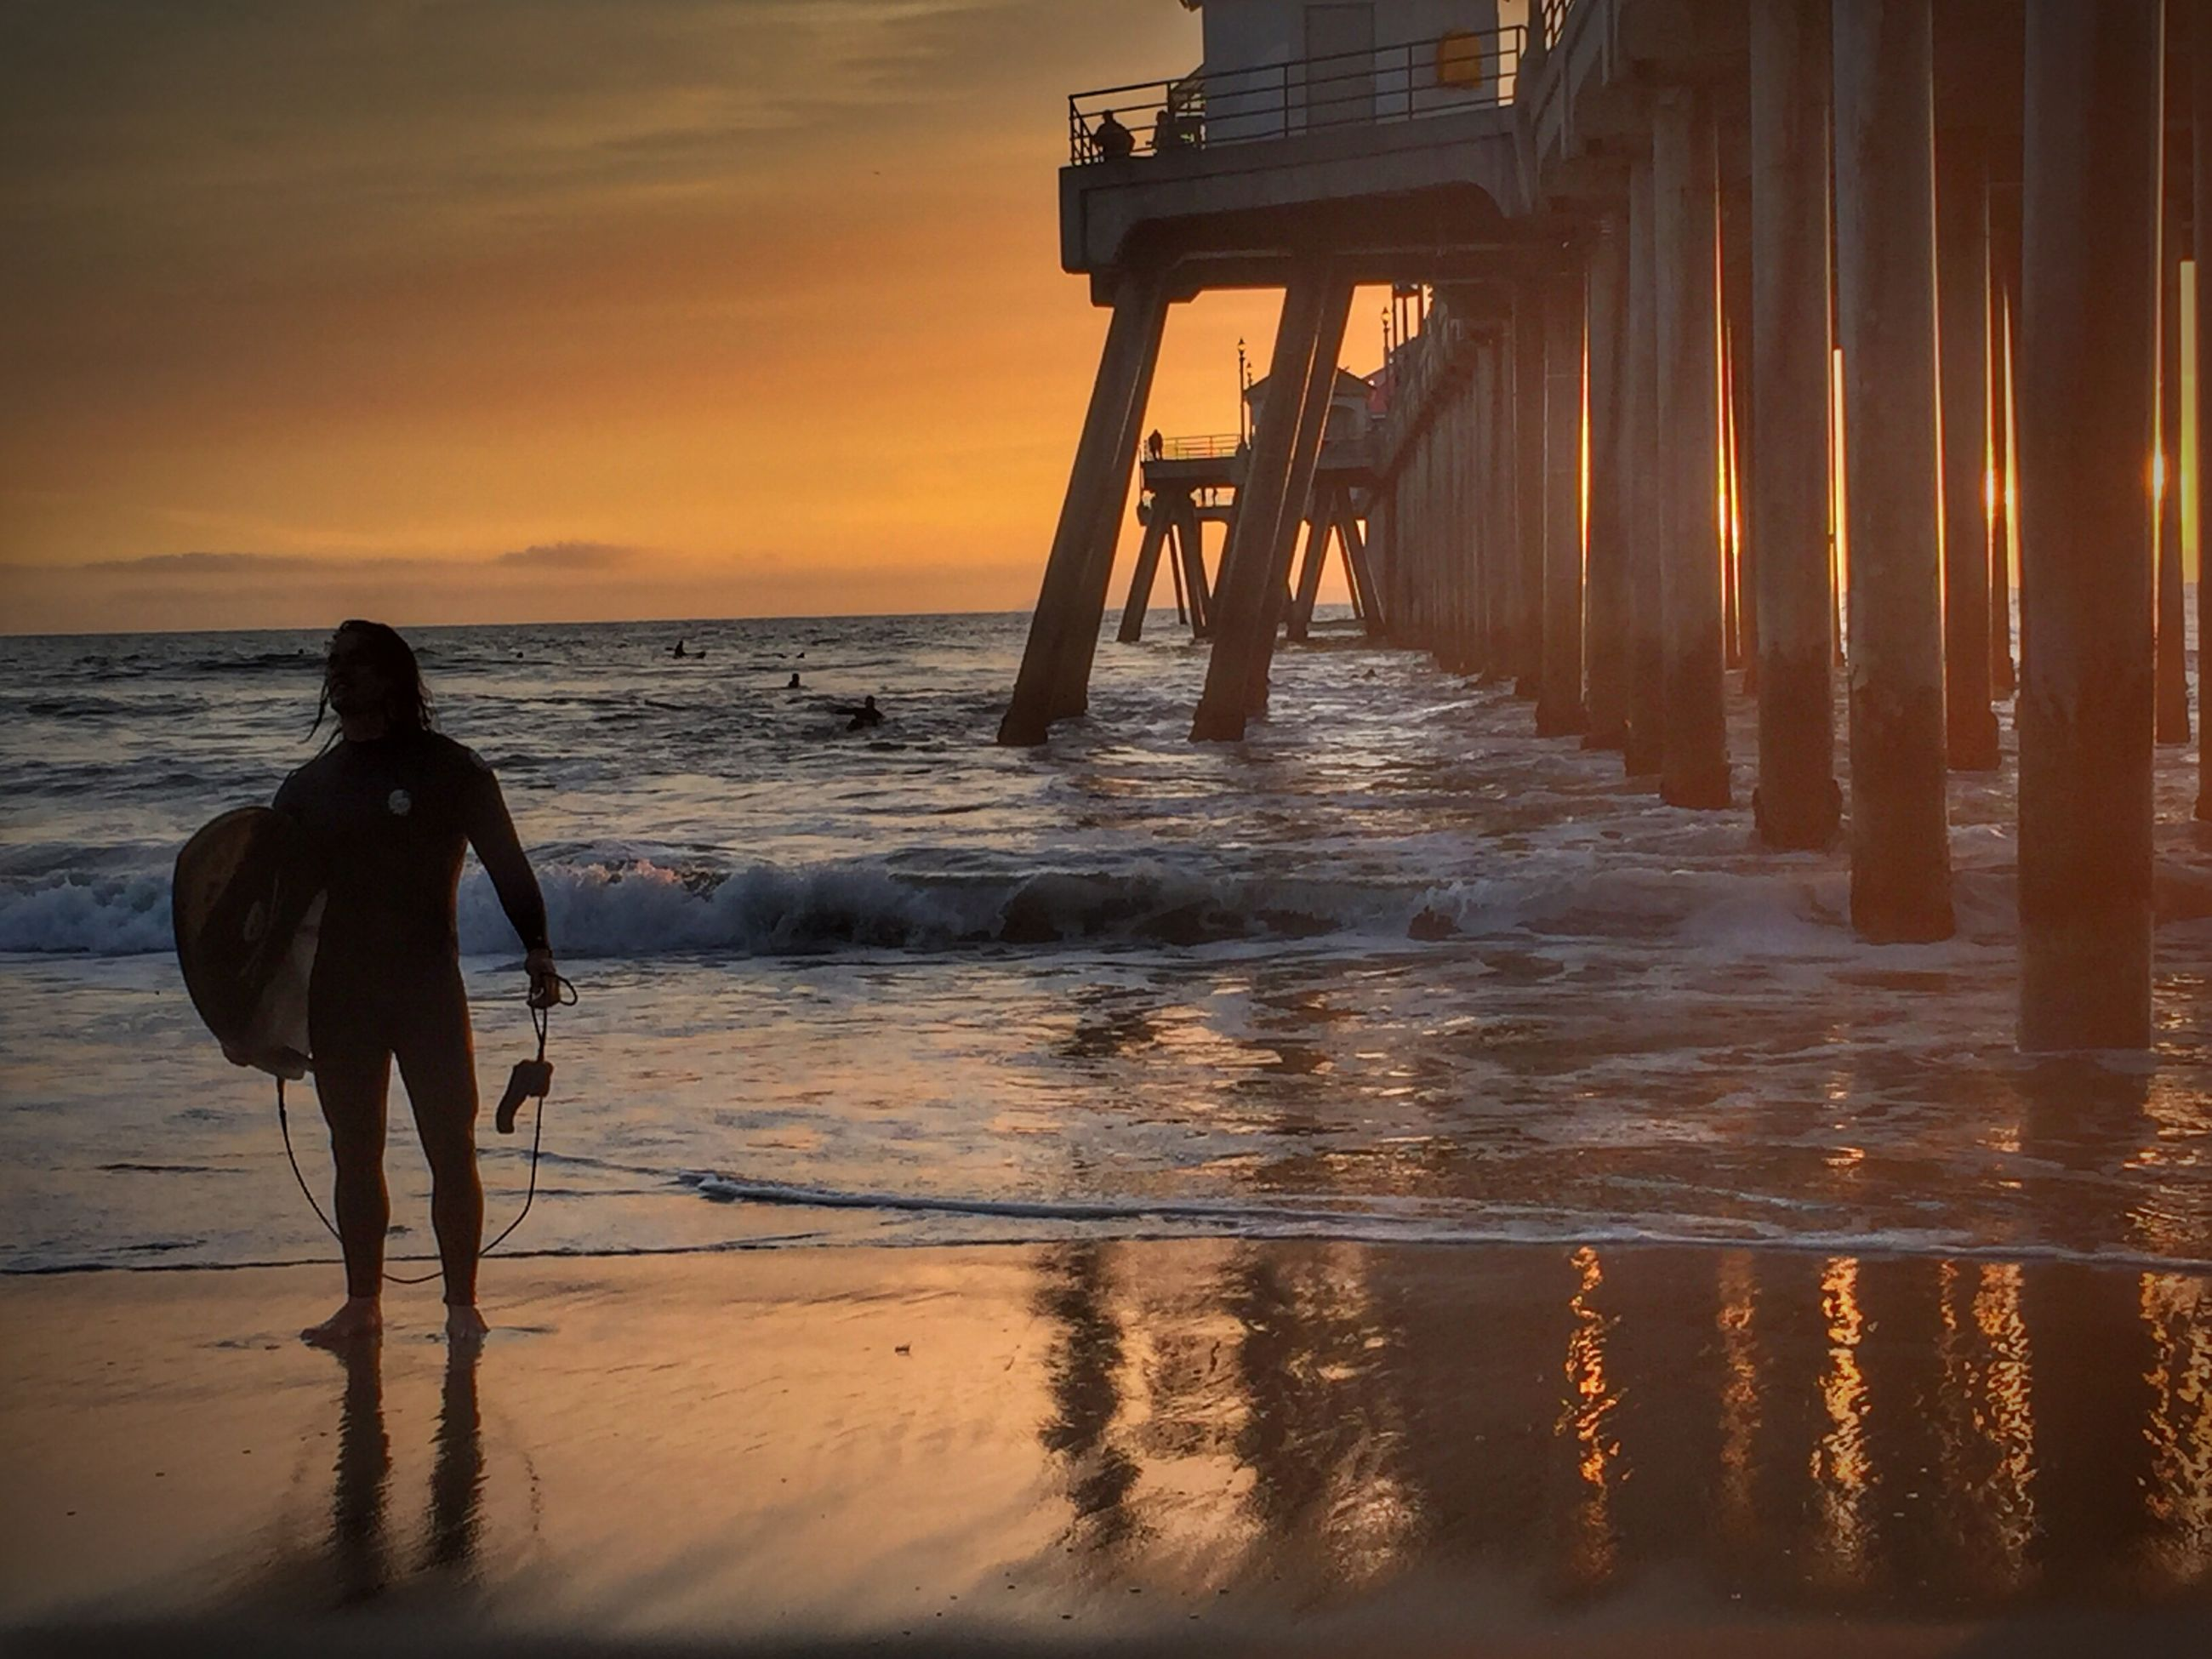 sunset, water, sea, beach, nature, real people, beauty in nature, standing, reflection, lifestyles, sky, leisure activity, scenics, sand, full length, one person, men, horizon over water, tranquility, outdoors, ankle deep in water, wave, women, day, people